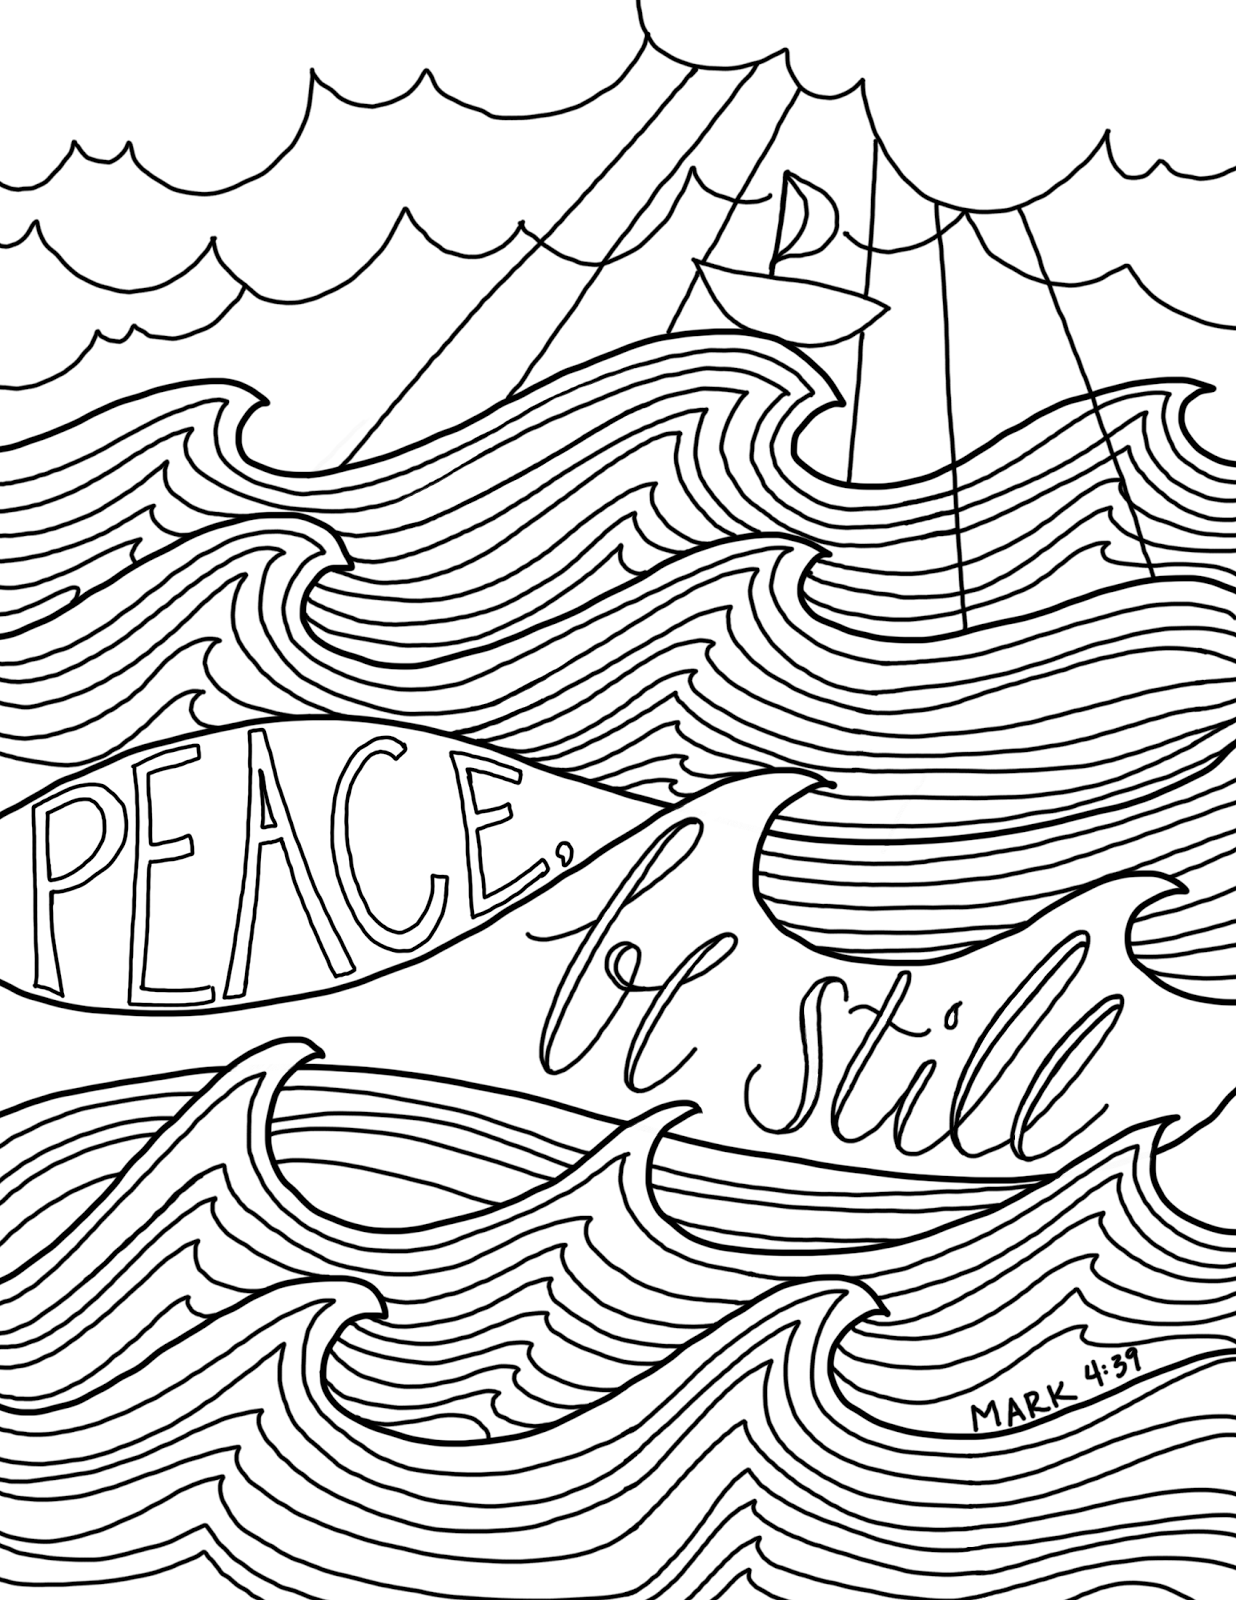 peace coloring pages simple and attractive free printable peace sign coloring peace pages coloring